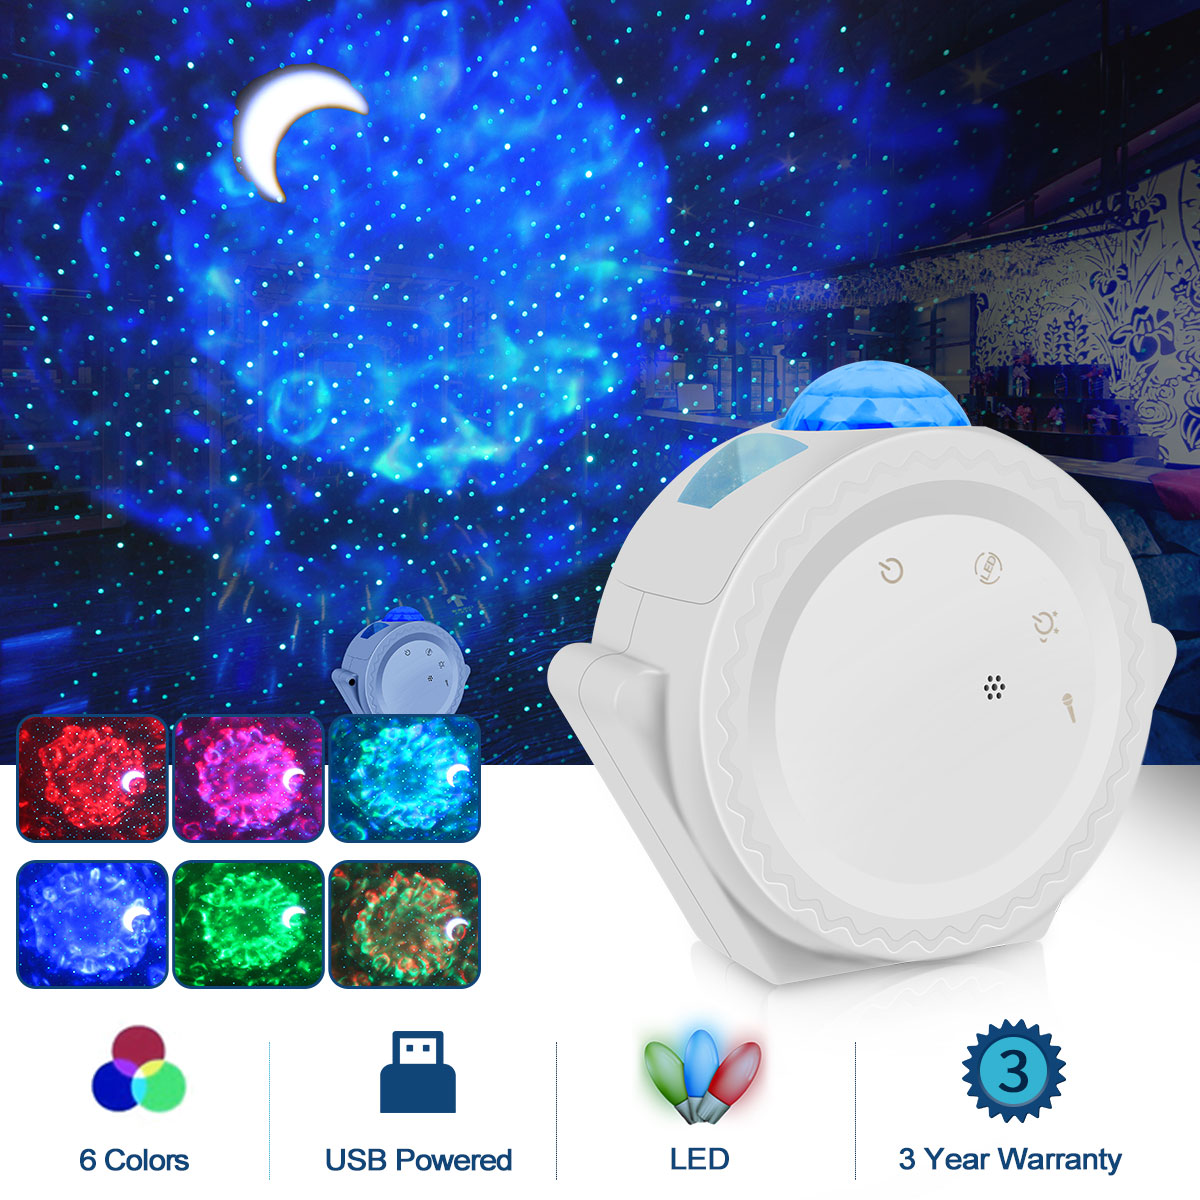 Starry Sky Projector Light 360 Degree Rotation Night Light 6 Colors Ocean Waving Light For Christmas New Year Party Decoration